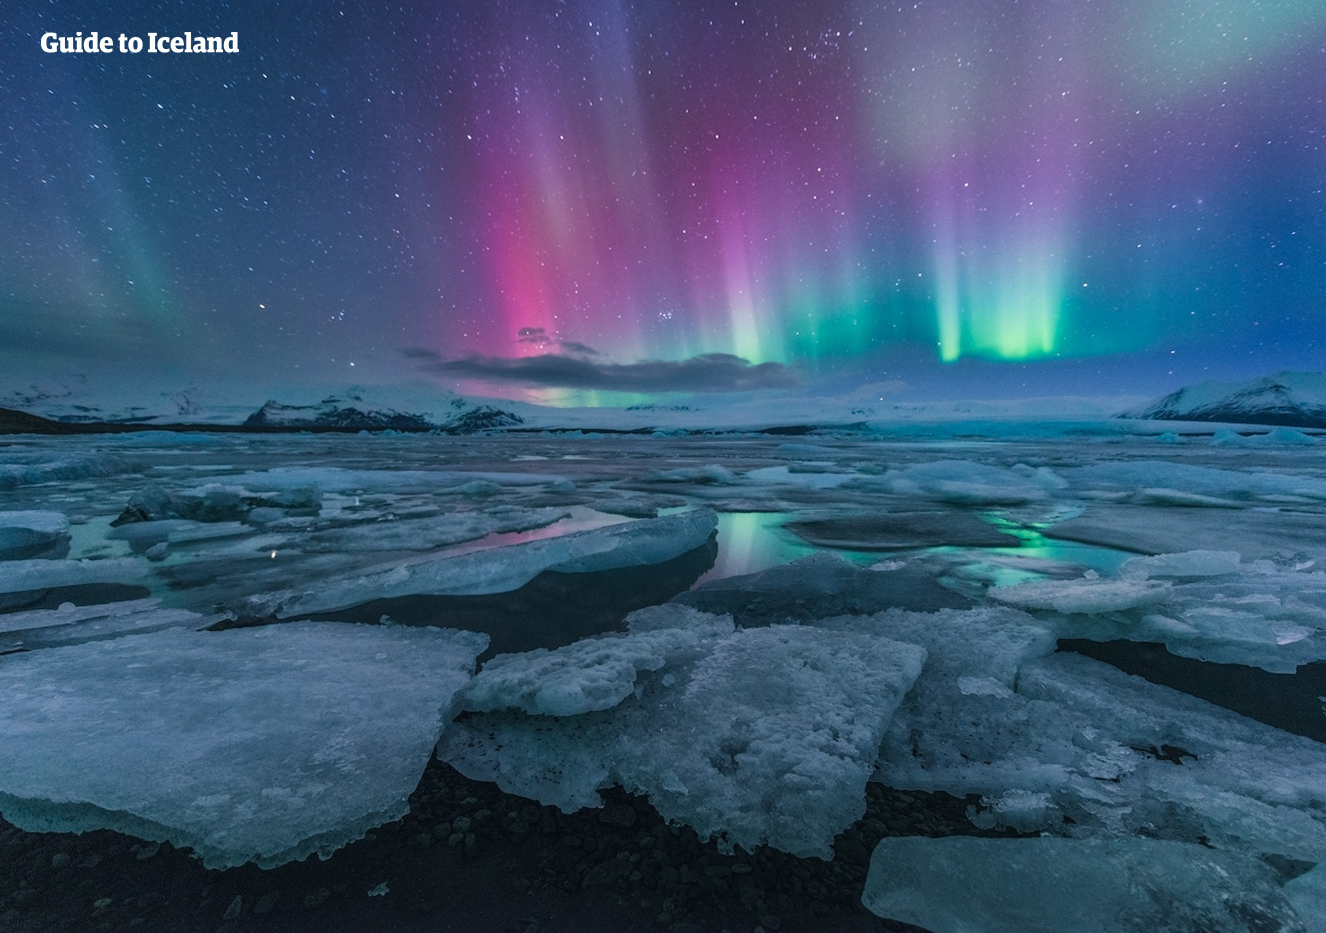 Blue auroras are incredibly rare, but here can be seen dancing with purple lights over south-east Iceland's Jökulsárlón glacier lagoon in winter.